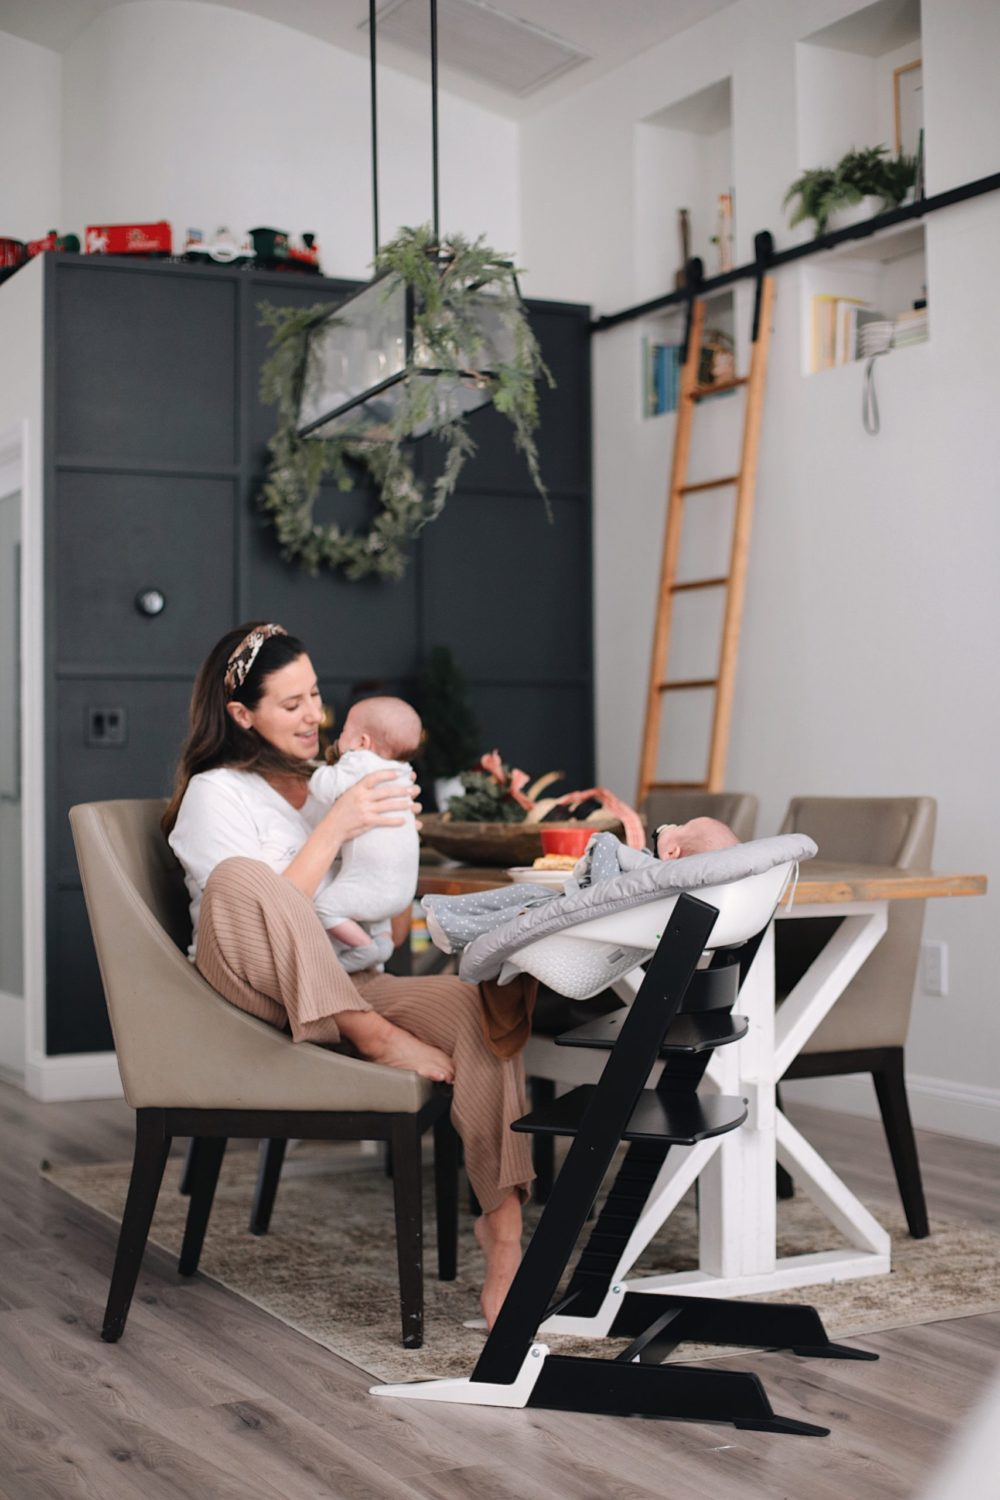 Tutorial: DIY Wood Grid Wall | Tutorial: Board and Batten Grid Wall by popular Florida DIY blog, Fresh Mommy Blog: image of a woman sitting in a chair and holding her baby in front of a board and batten grid wall.